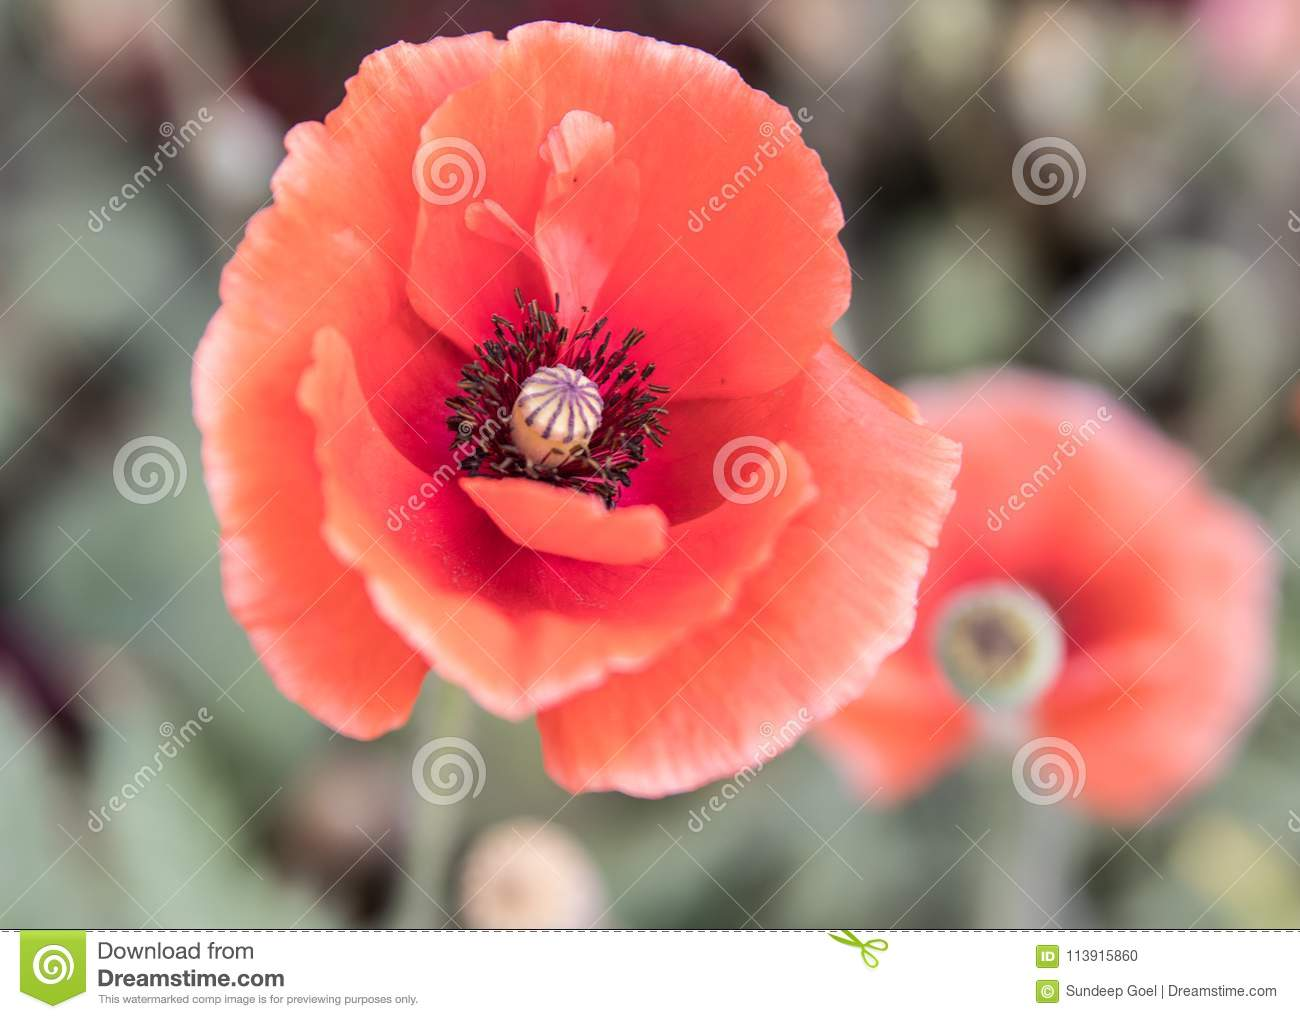 Red Poppy Flower Blossoms Stock Photo Image Of Poppies 113915860